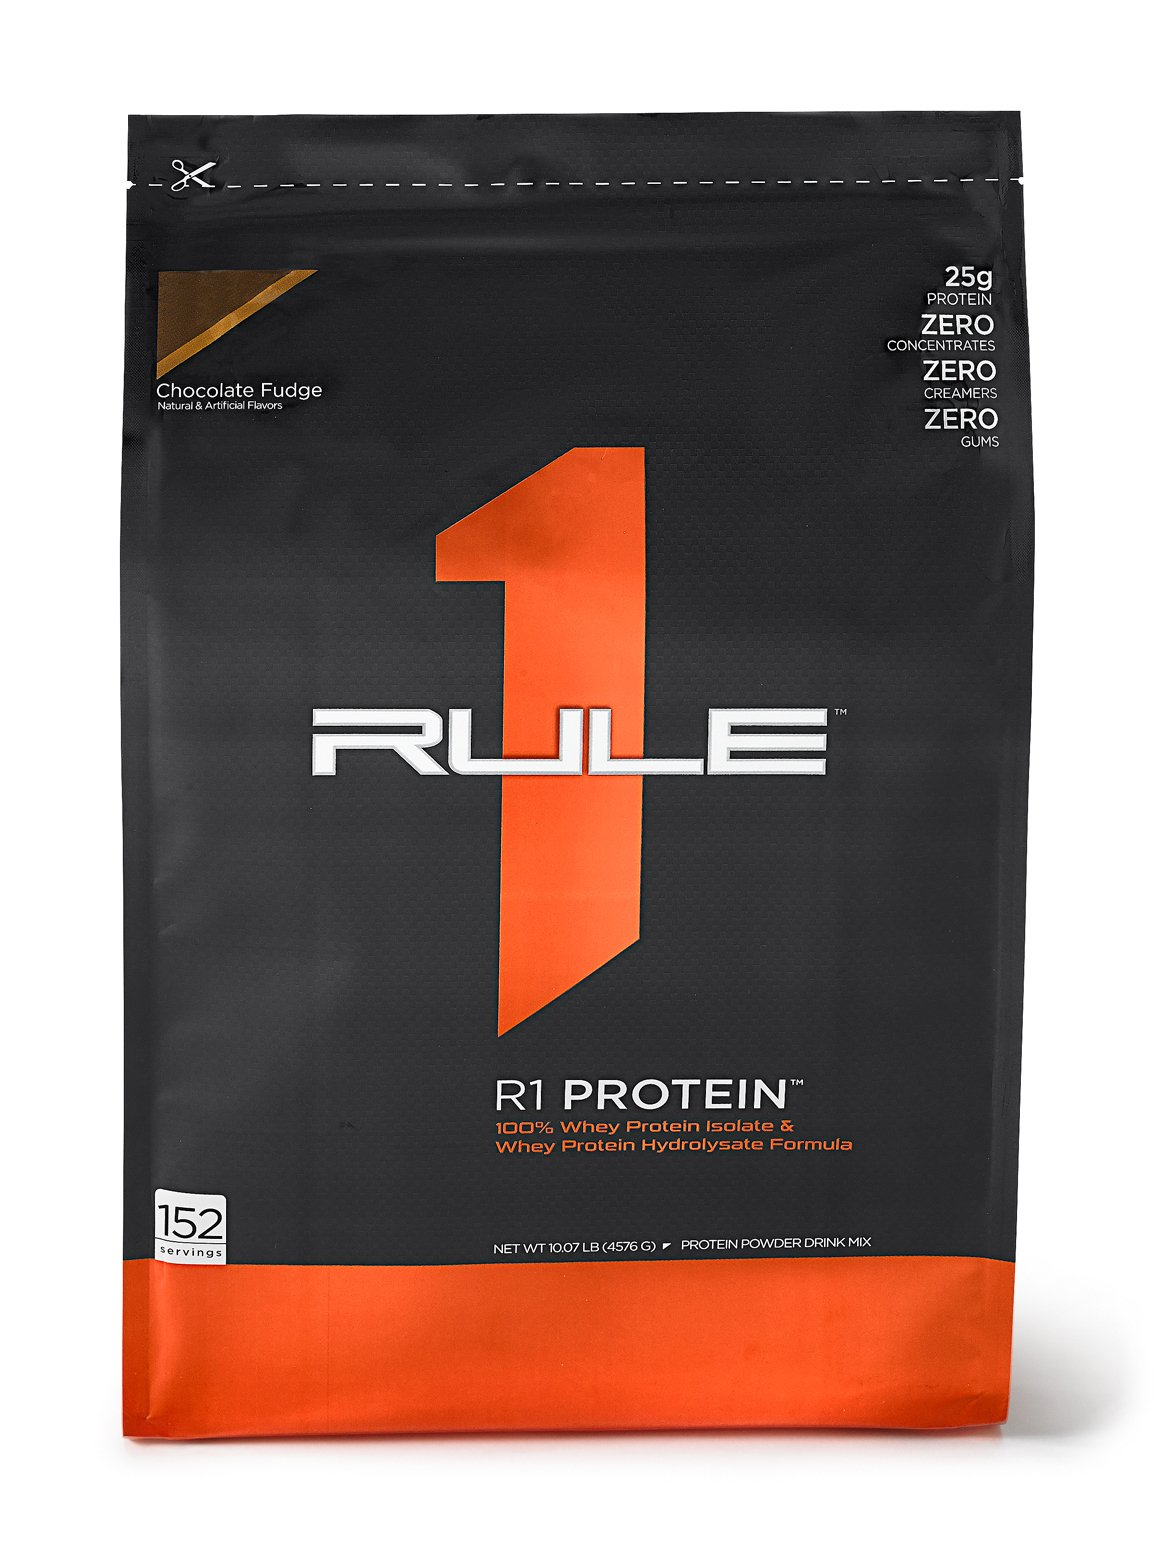 R1 Protein Whey Isolate/Hydrolysate, Rule 1 Proteins (152 Servings, Chocolate Fudge)